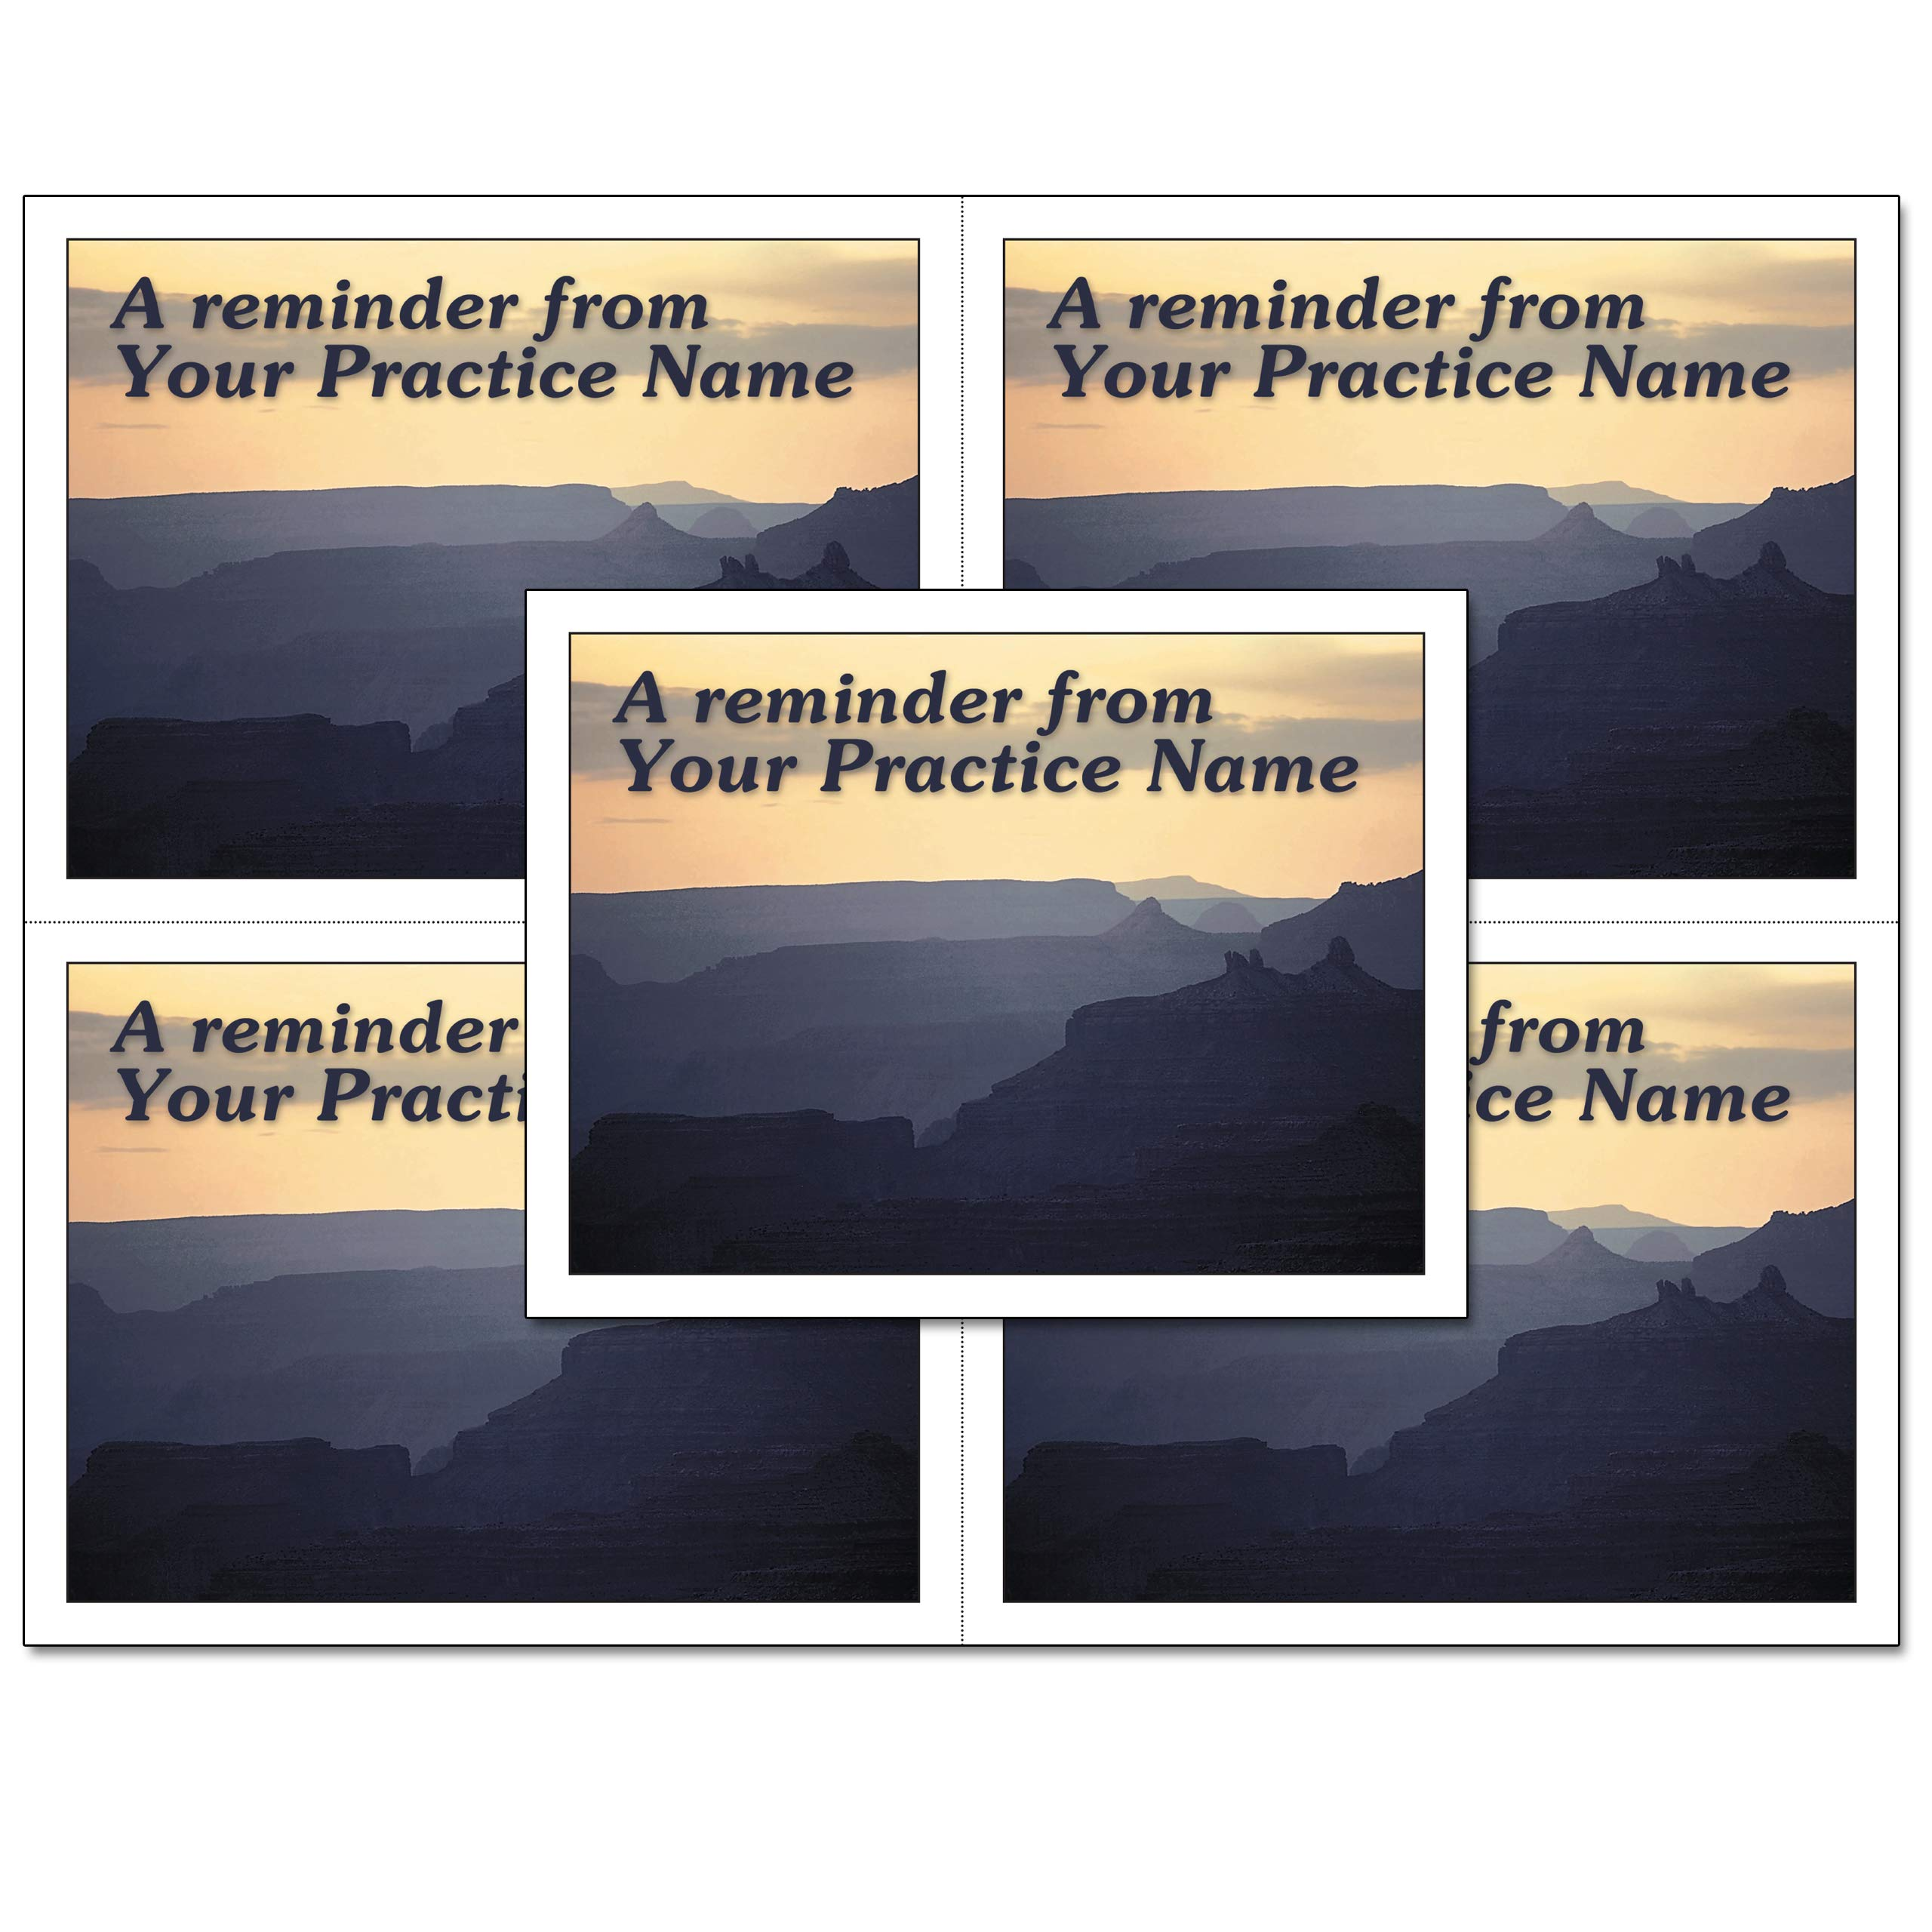 Laser Reminder Postcards, Customizable Dental Appointment Reminder Cards. 4 Cards Perforated for Tear-Off at 4.25'' x 5.5'' on an 8.5'' x 11'' Sheet of 8 Pt Card Stock. DEN301LZC (2500) by Custom Recall (Image #1)